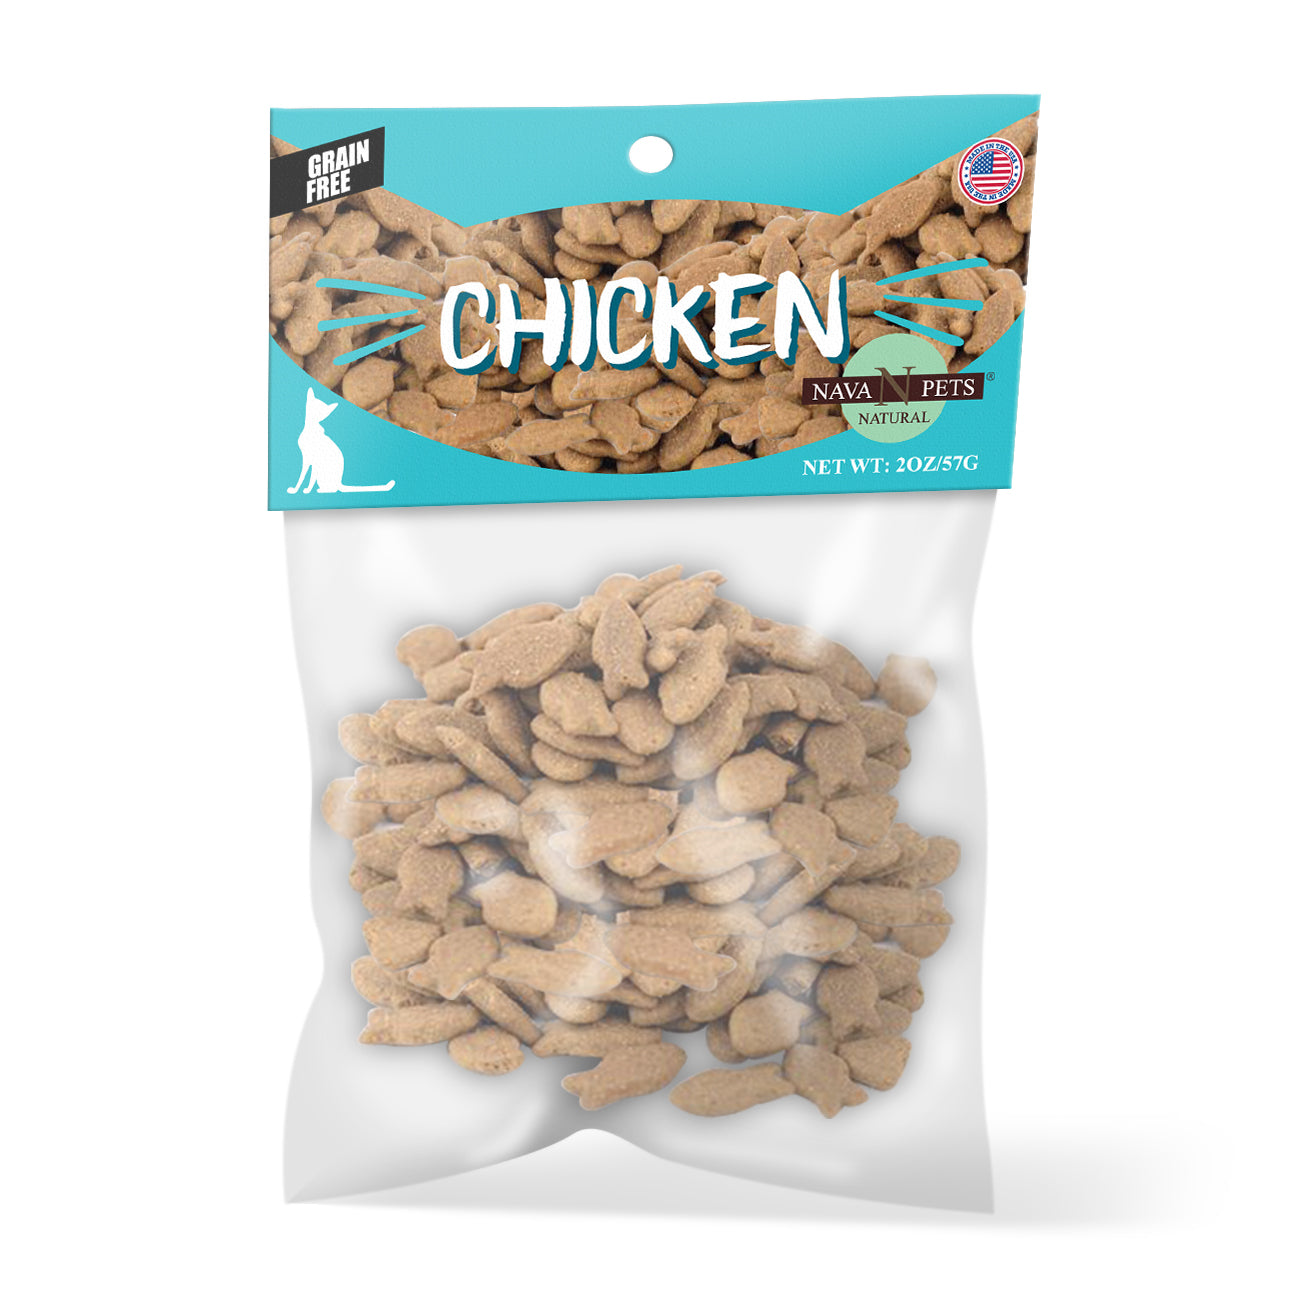 Nava Pets All-Natural Chicken Grain-Free Cat Treats - 4OZ